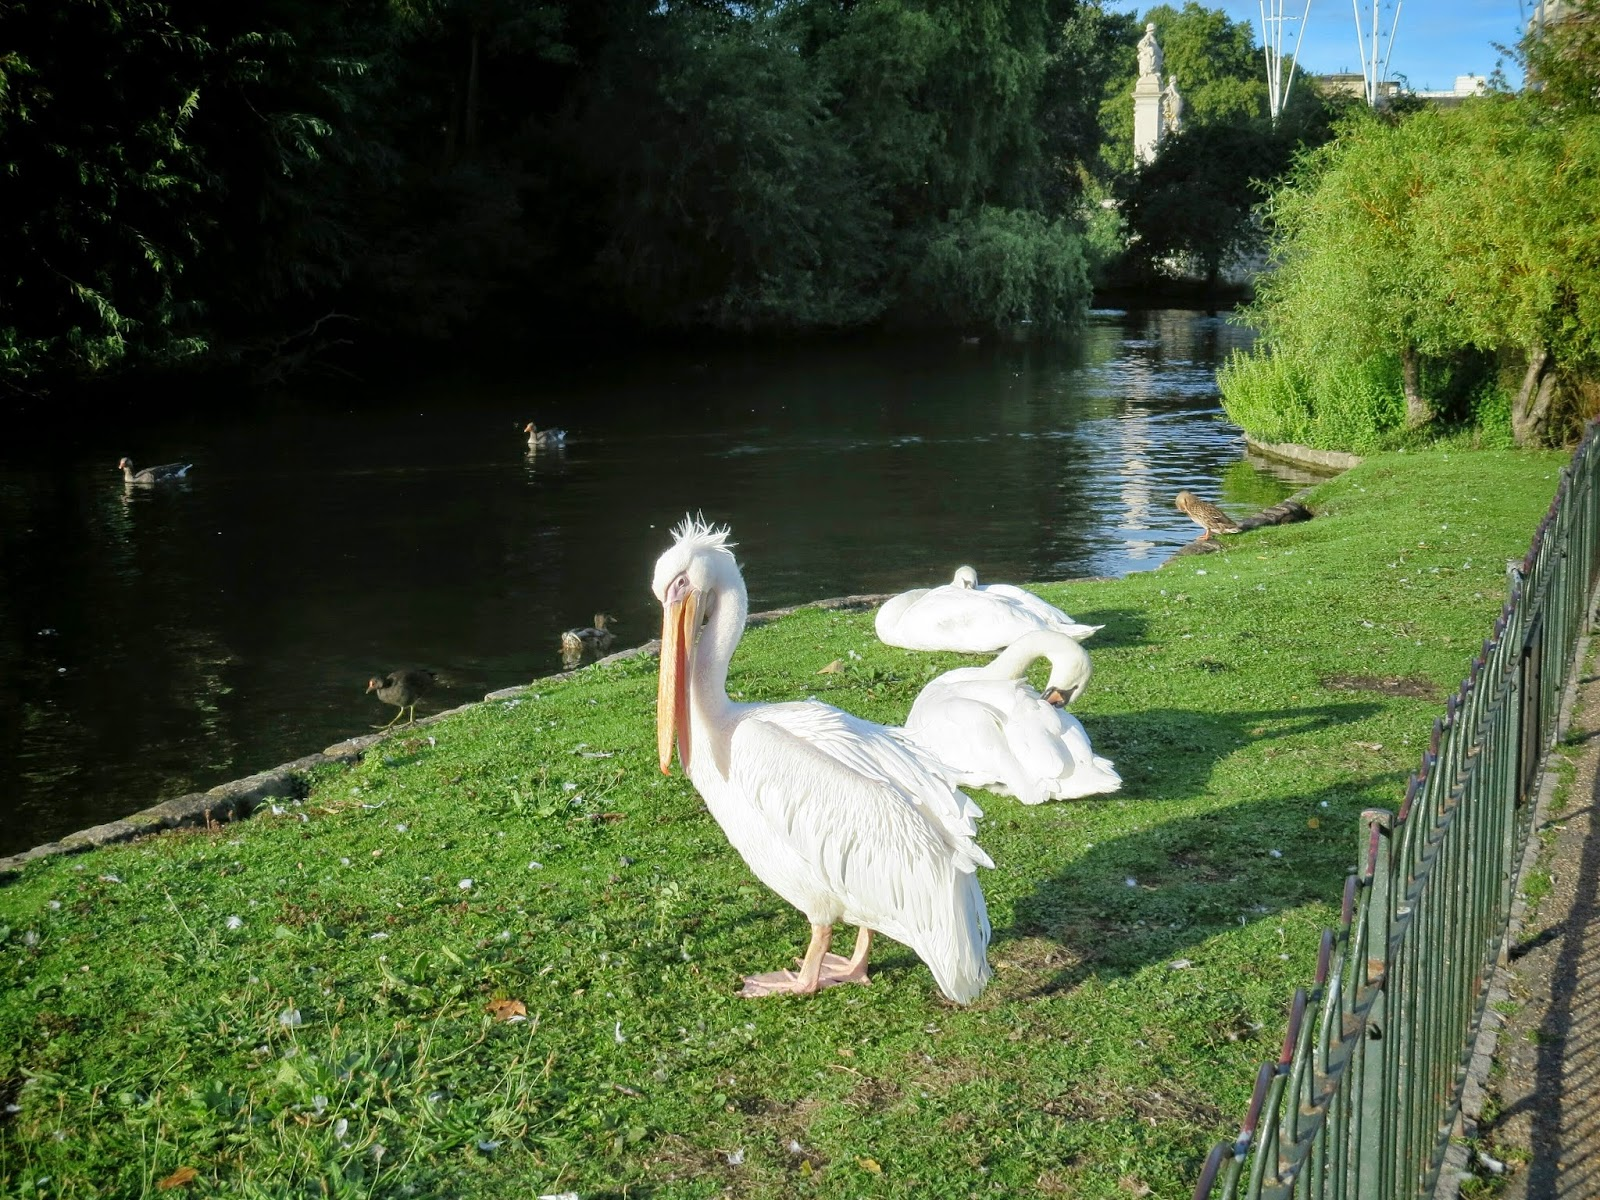 Pictures of St. James Park Pelicans